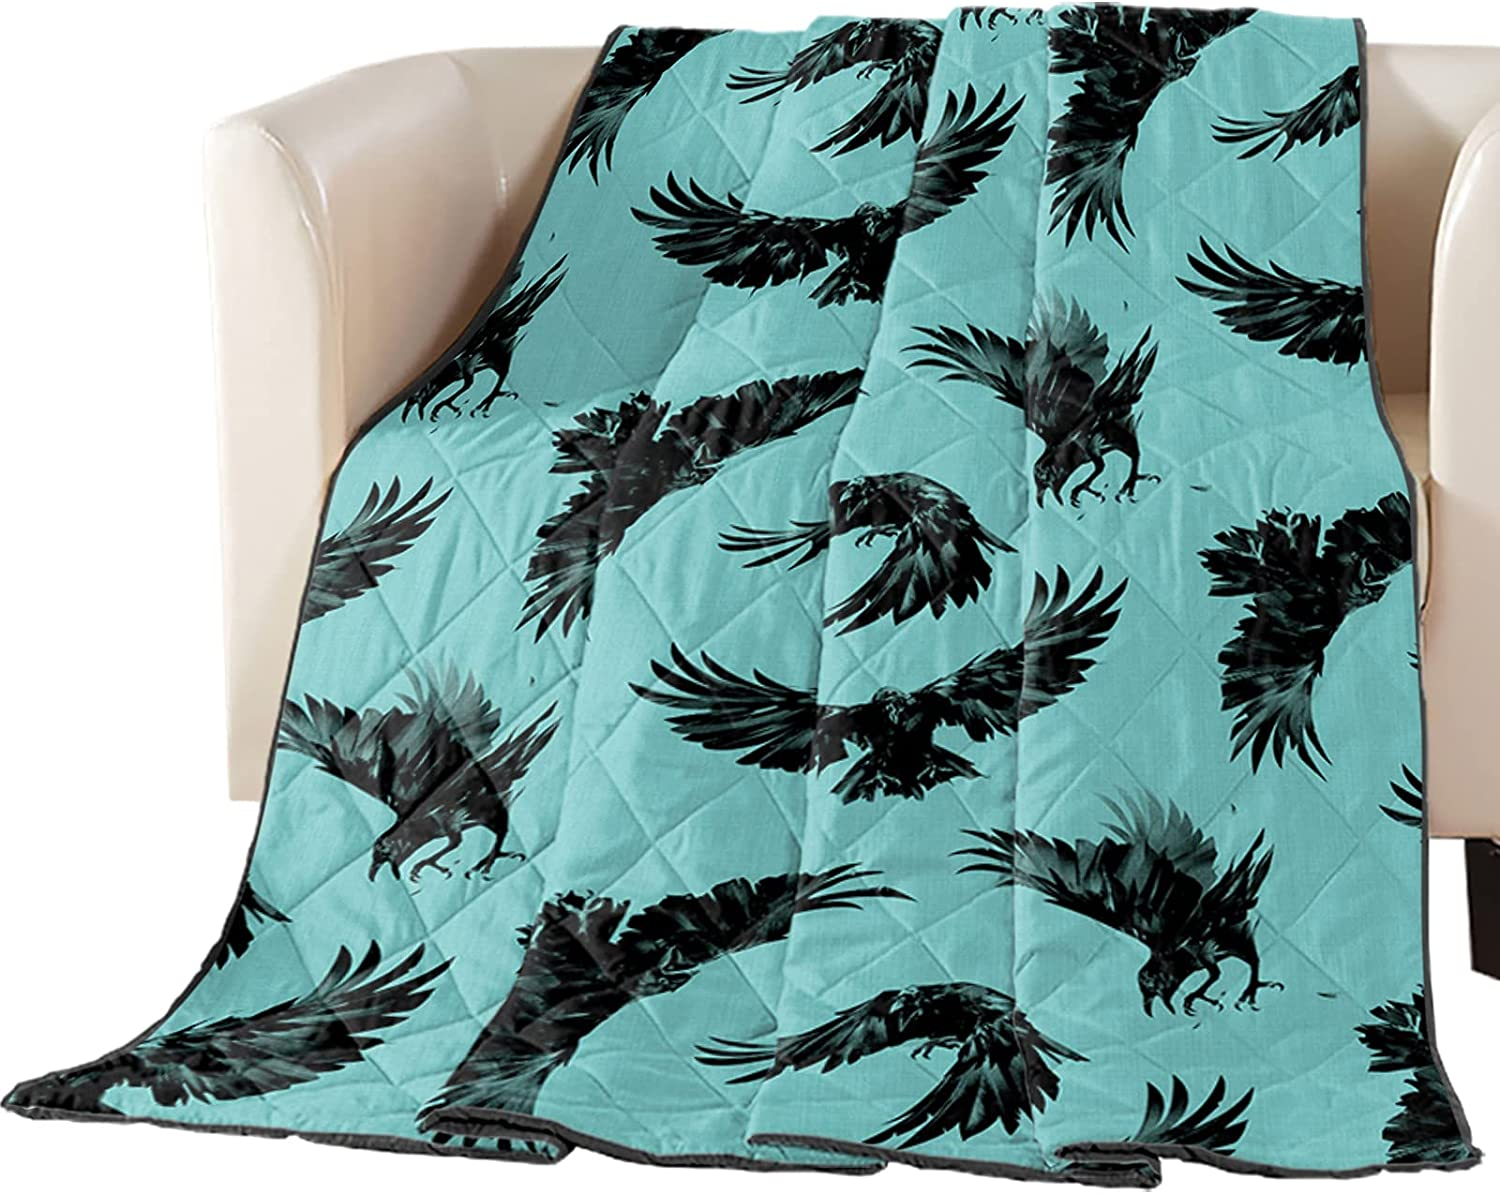 25% OFF Luck Sky Premium Coverlet Diamond 98x98in Regular store Hallo Stitched Quilted